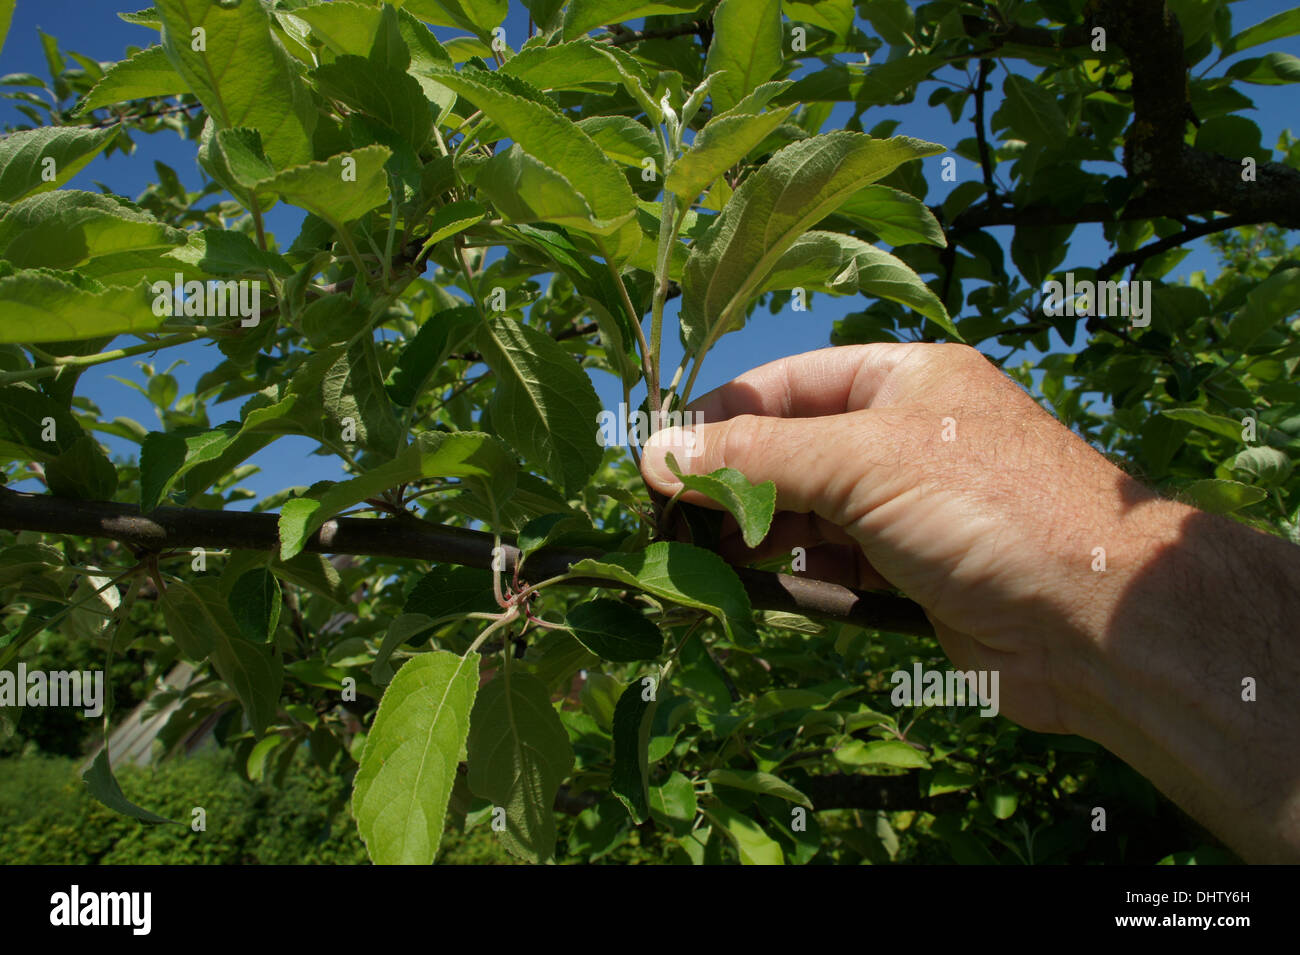 Appletree-pruning in summer Stock Photo